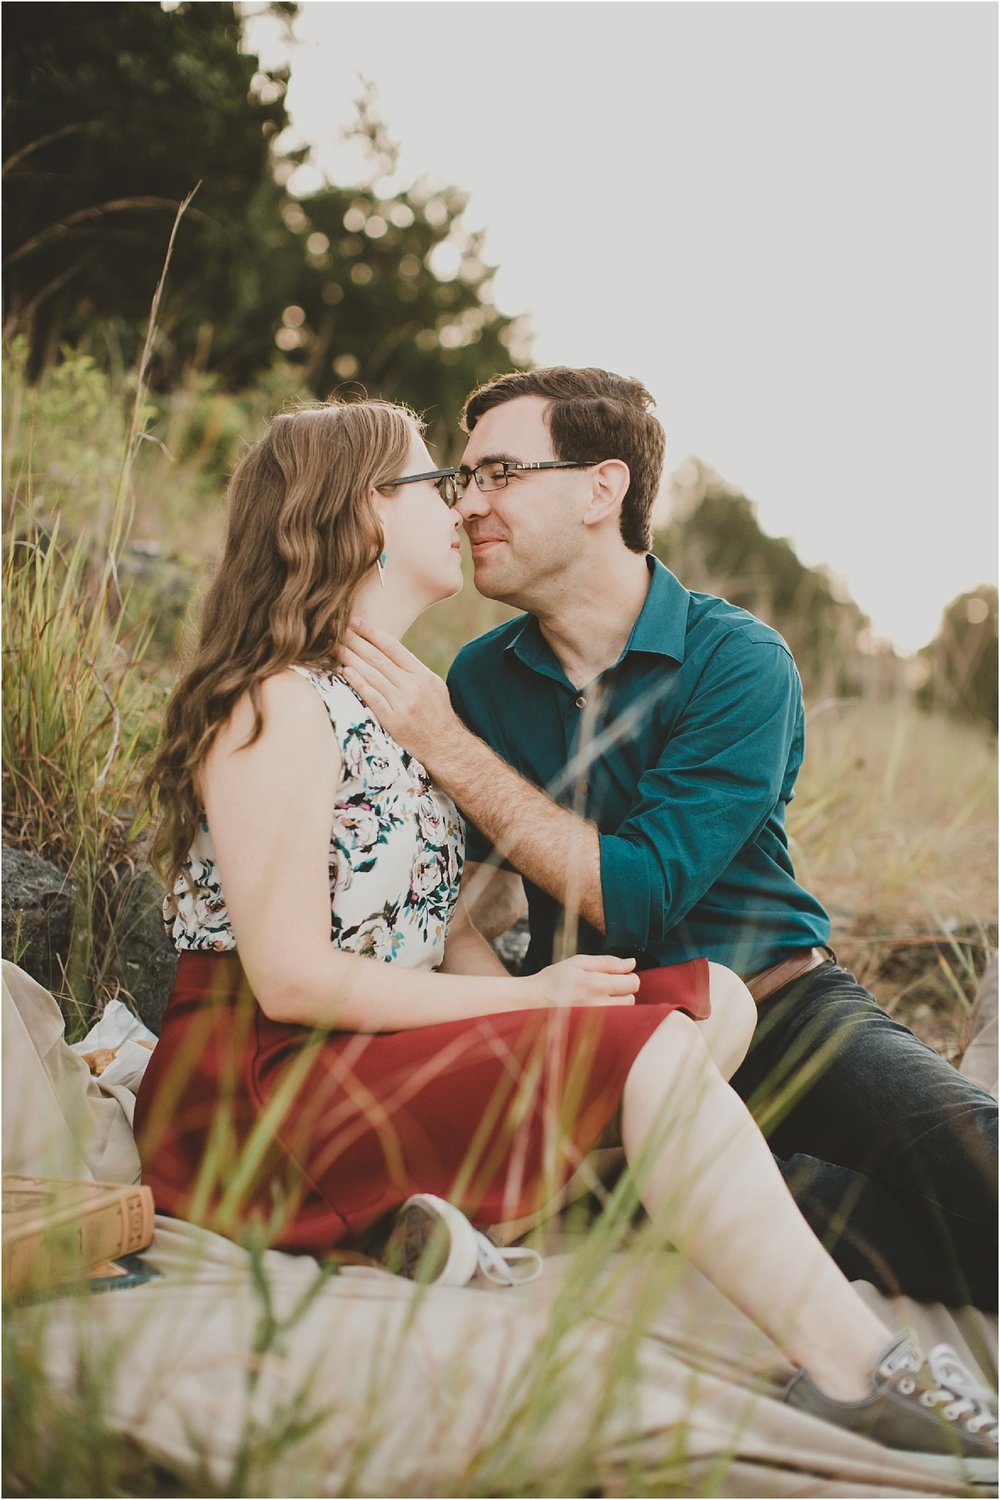 PattengalePhotography_Laura&Ryan_HaHaTonka_StatePark_Lake_of_the_Ozarks_EngagementSession_Adventure_Hiking_boho_Outdoor_Summertime_Style_Missouri_WeddingPhotographer_0014.jpg